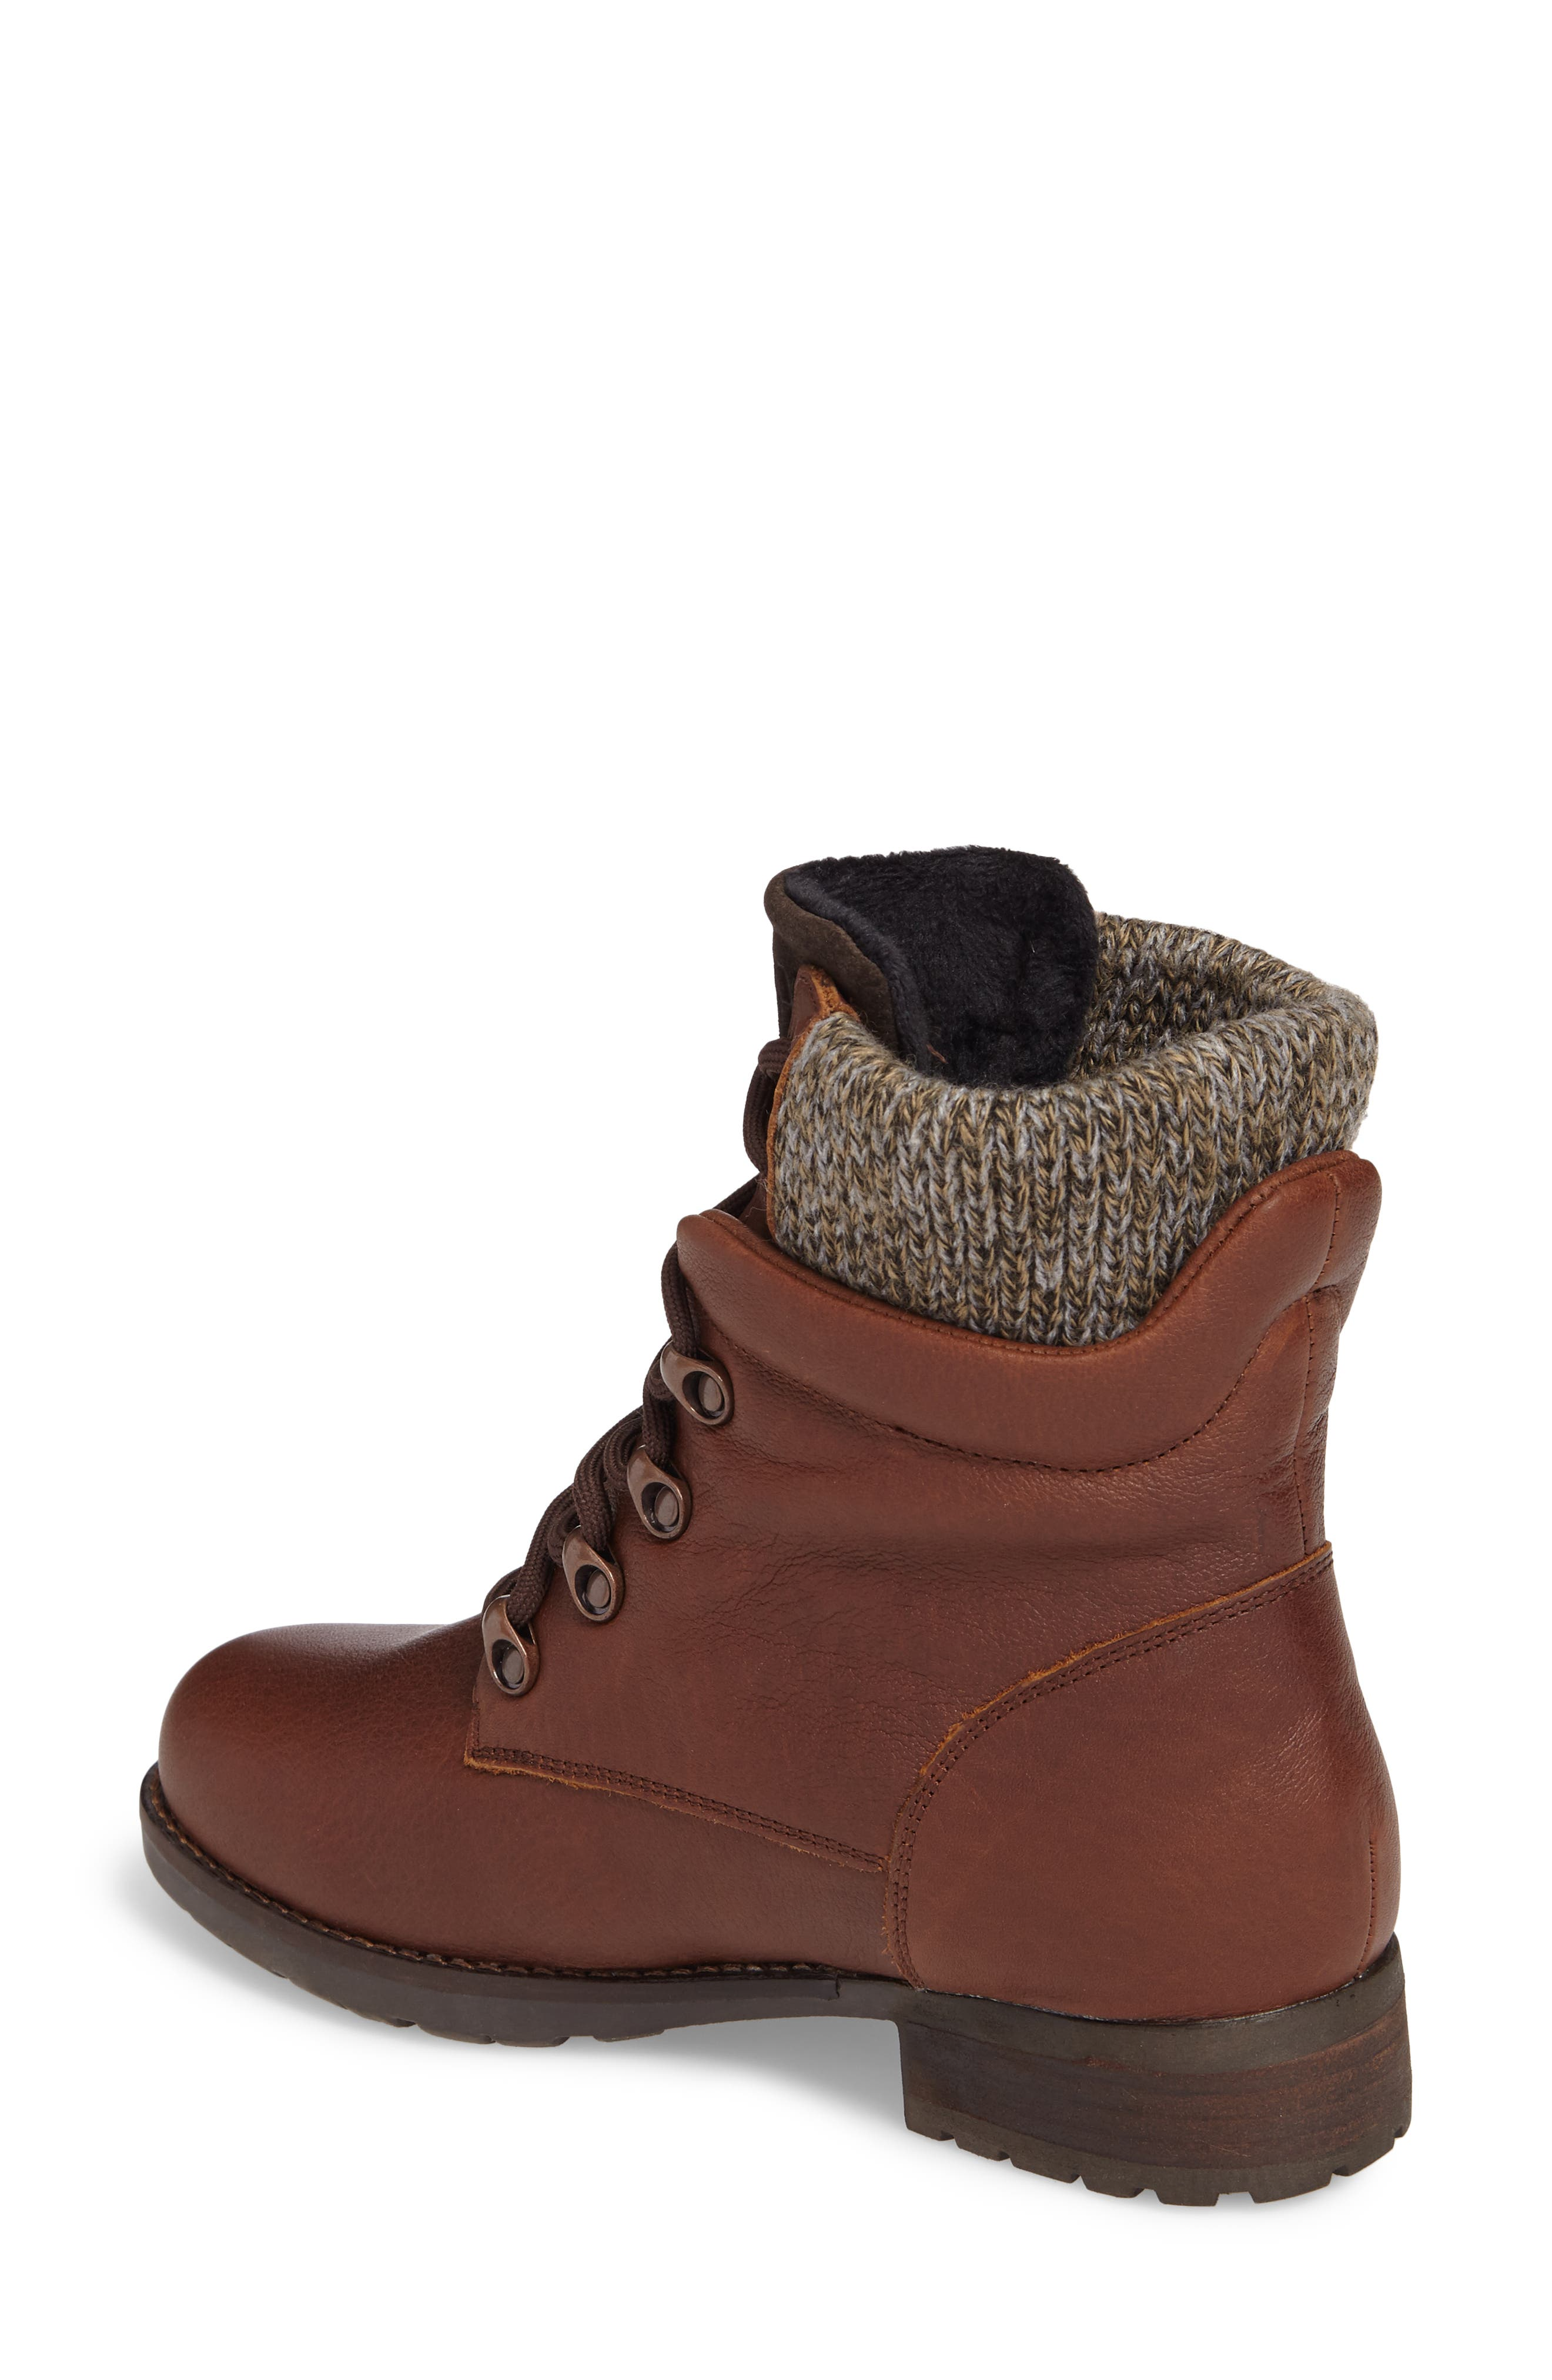 Derry Waterproof Boot,                             Alternate thumbnail 2, color,                             Dark Brown Leather